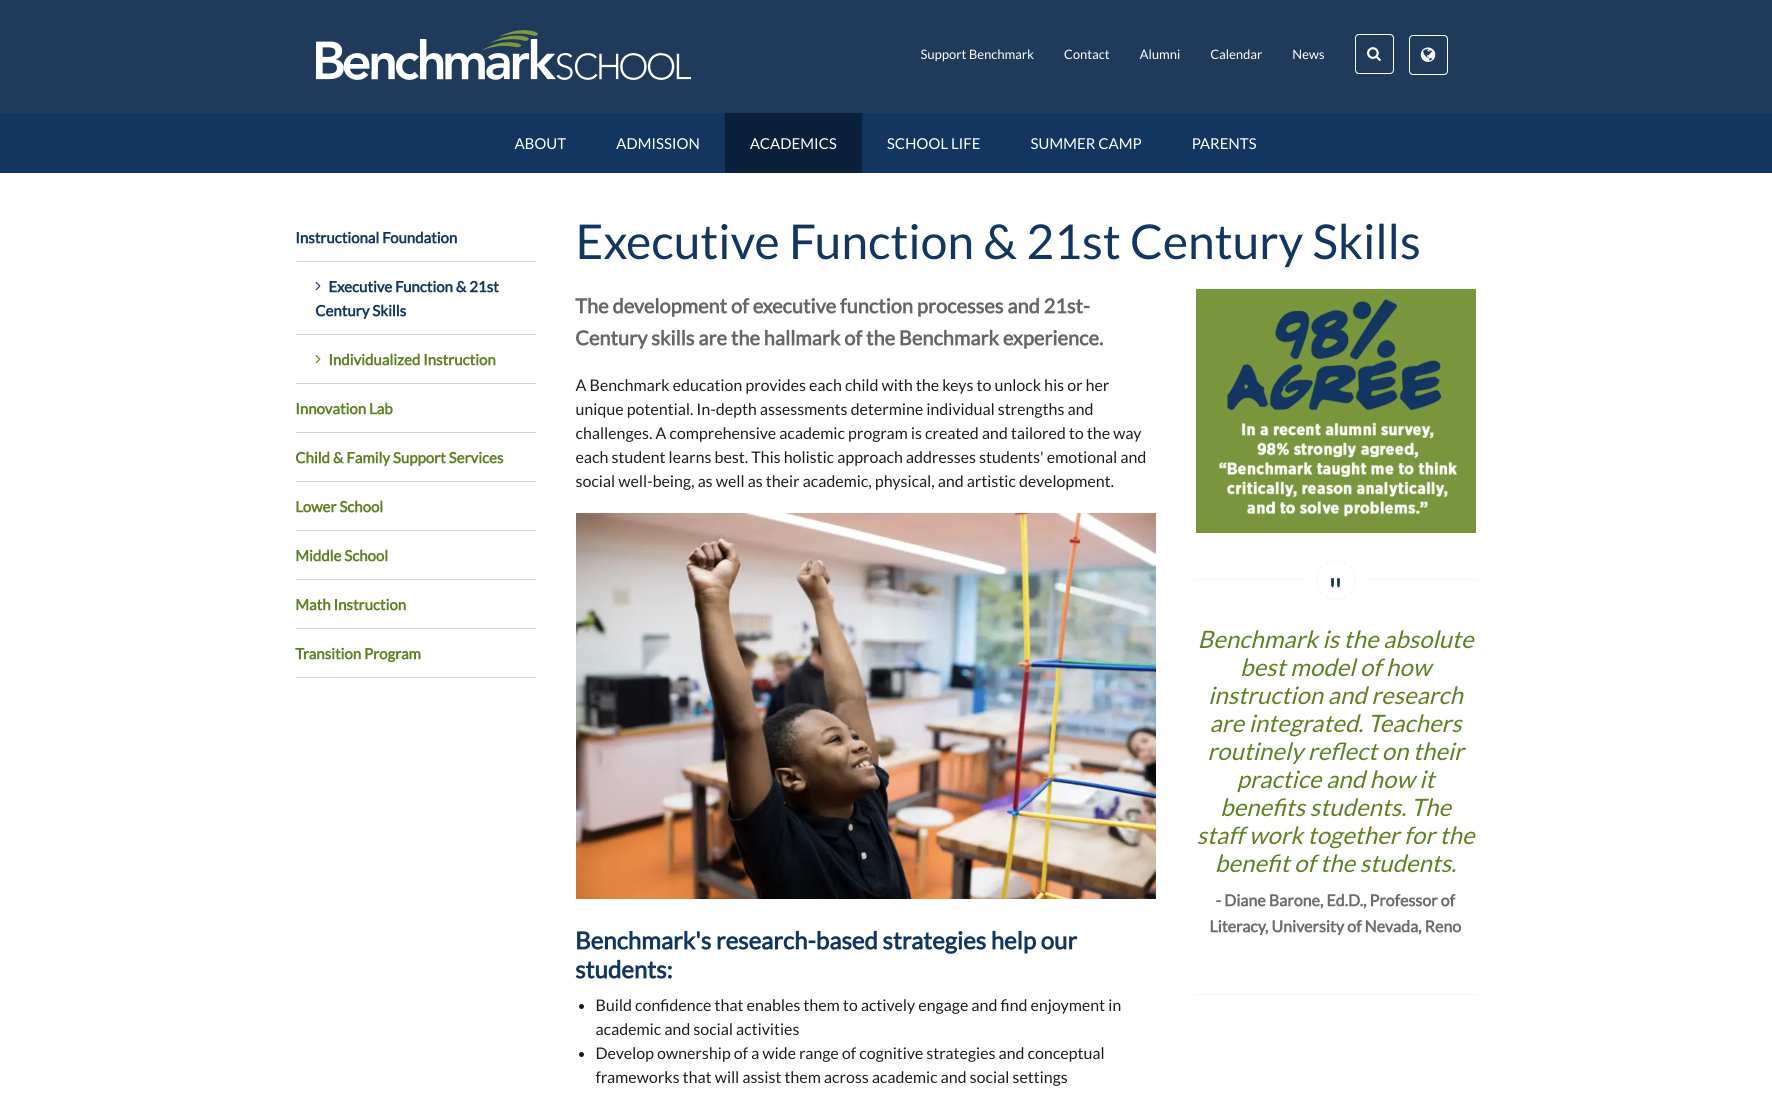 ExecutiveFunction21stCenturySkills-BenchmarkSchool2019-01-2812-08-00